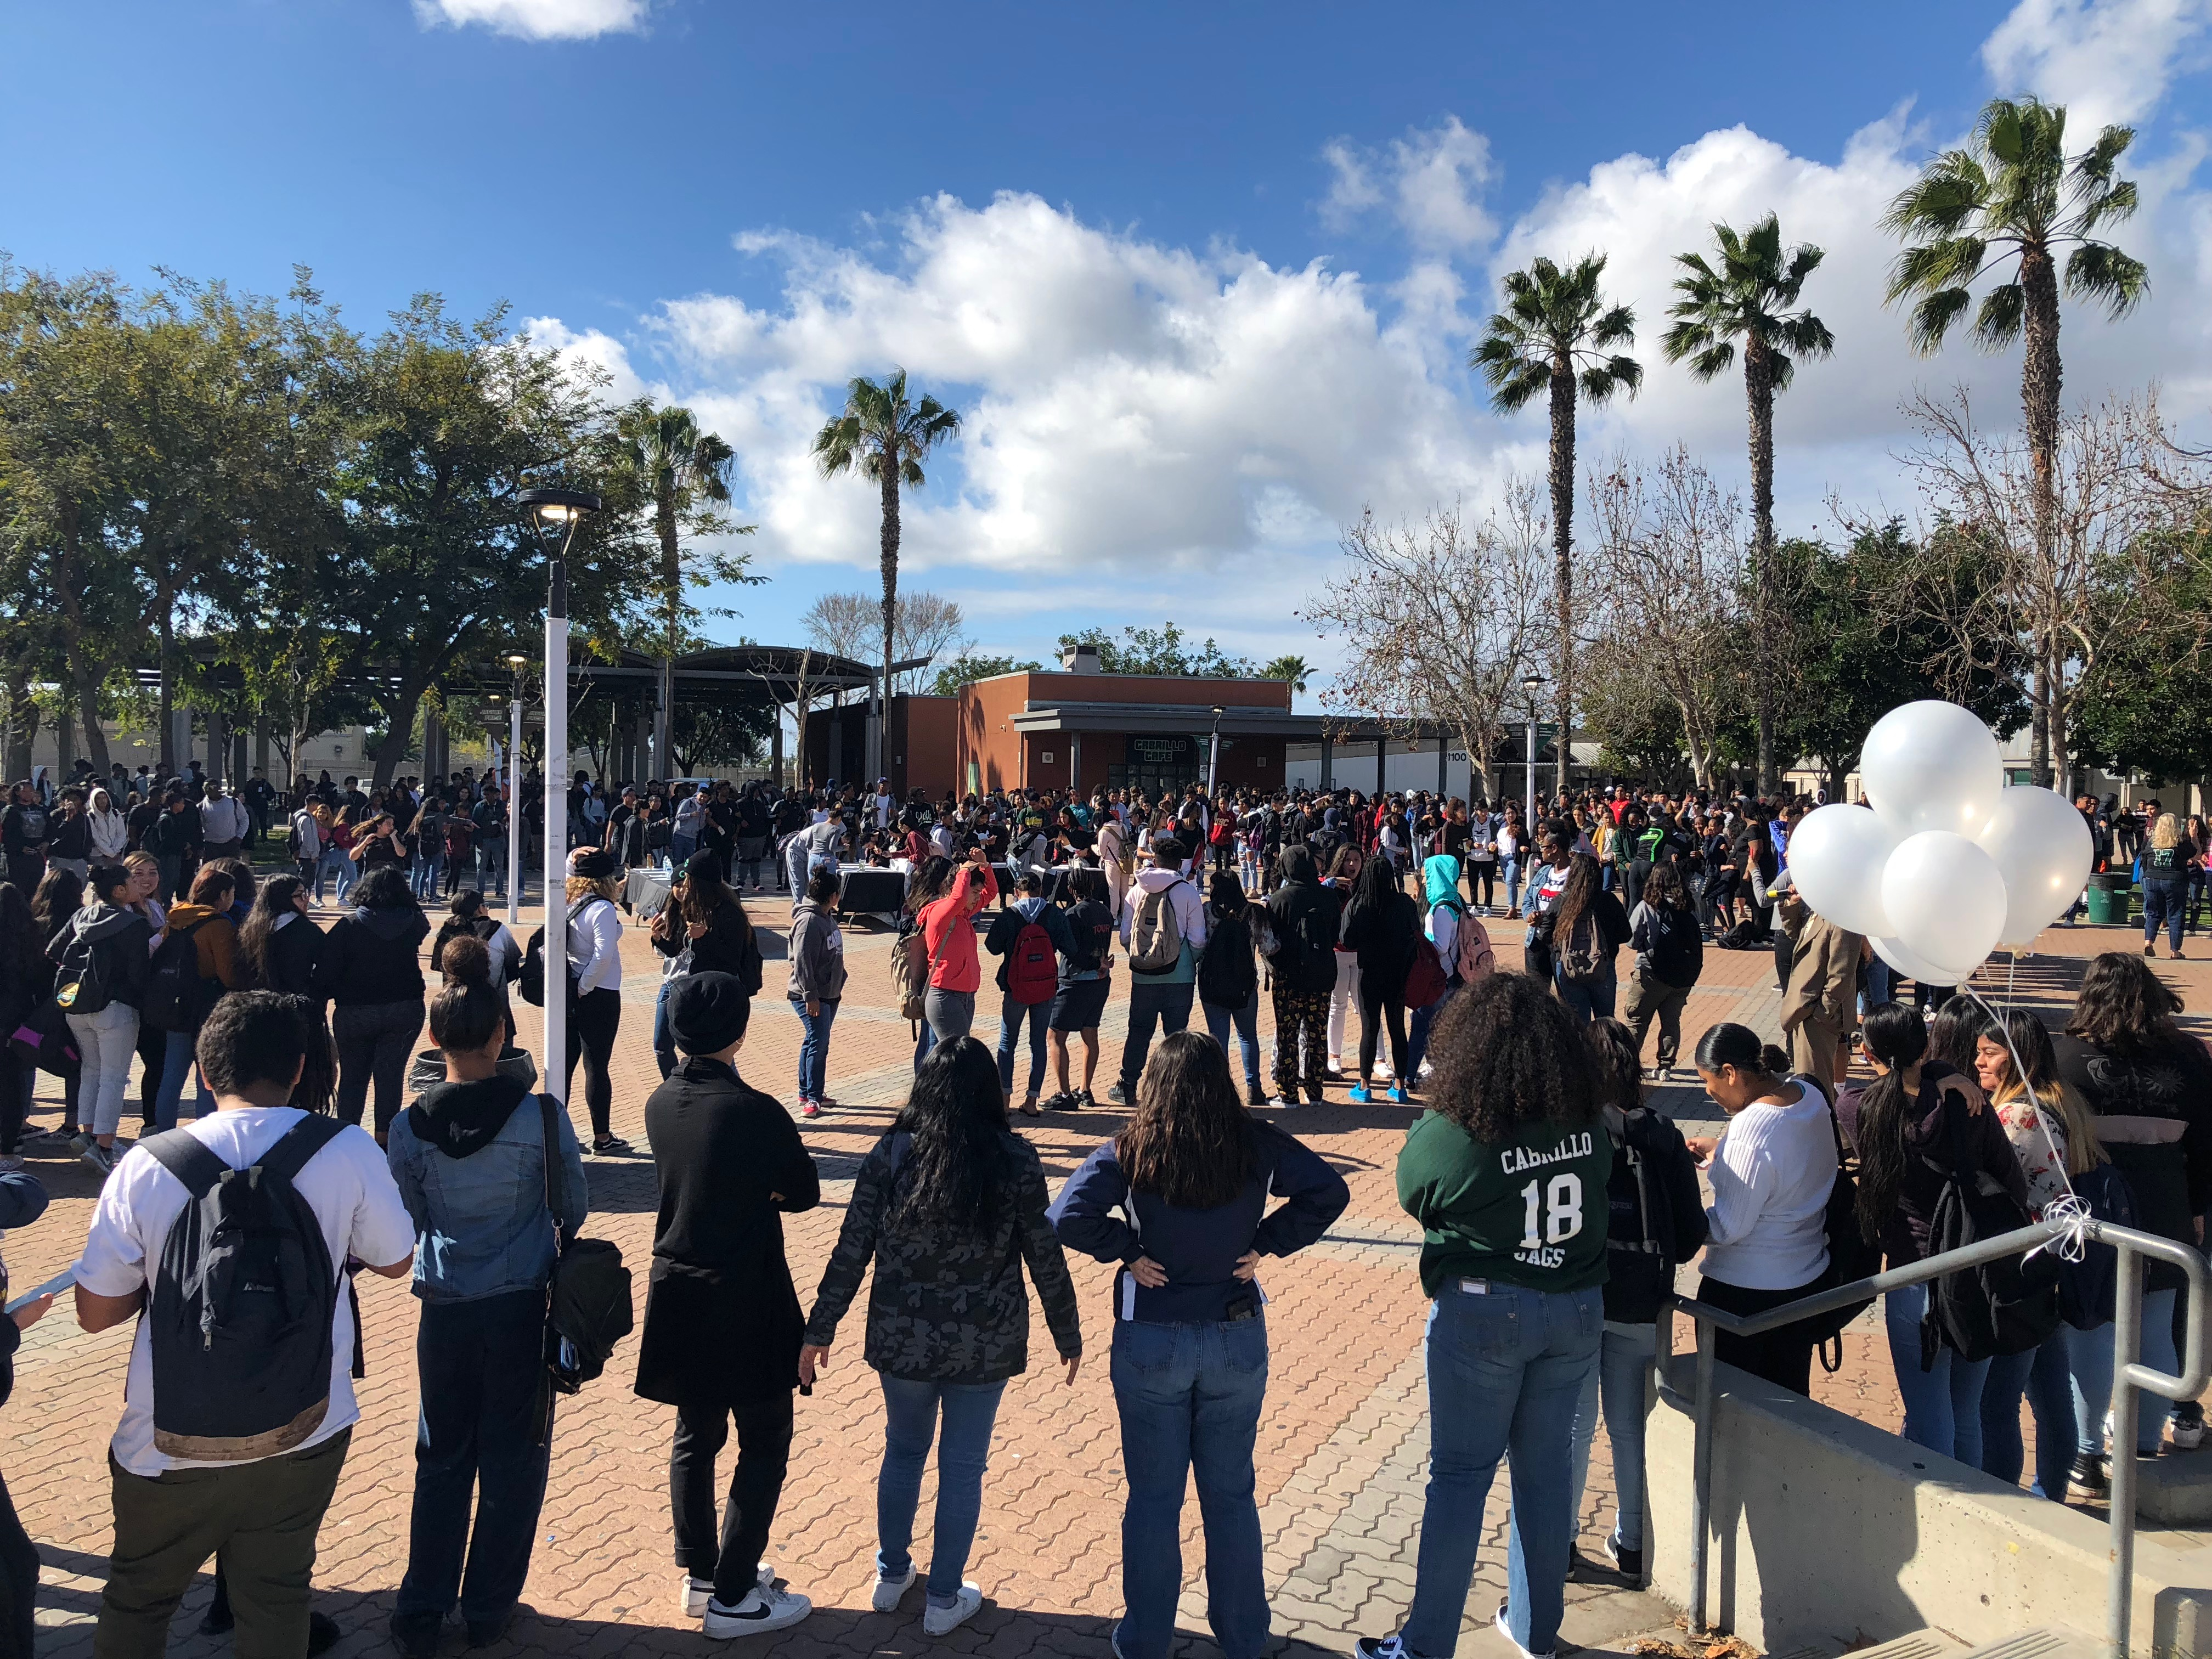 Peaceful Protest Against Gun Violence